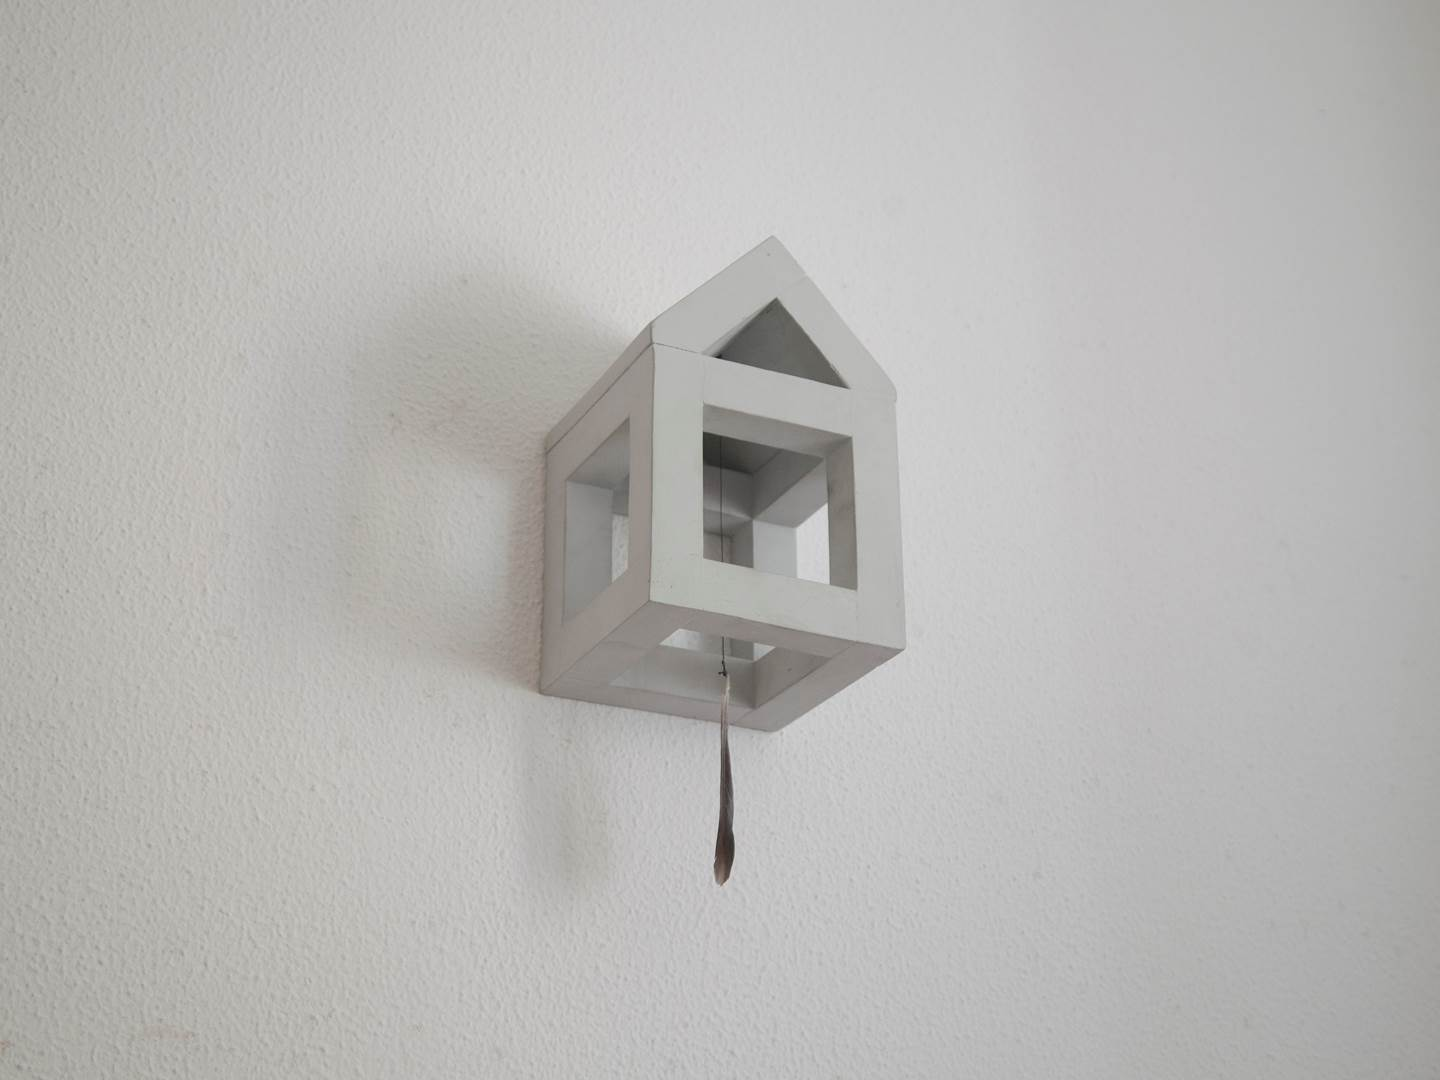 Foge casa!, original Small Mixed Technique Sculpture by Carlos Filipe Cavaleiro